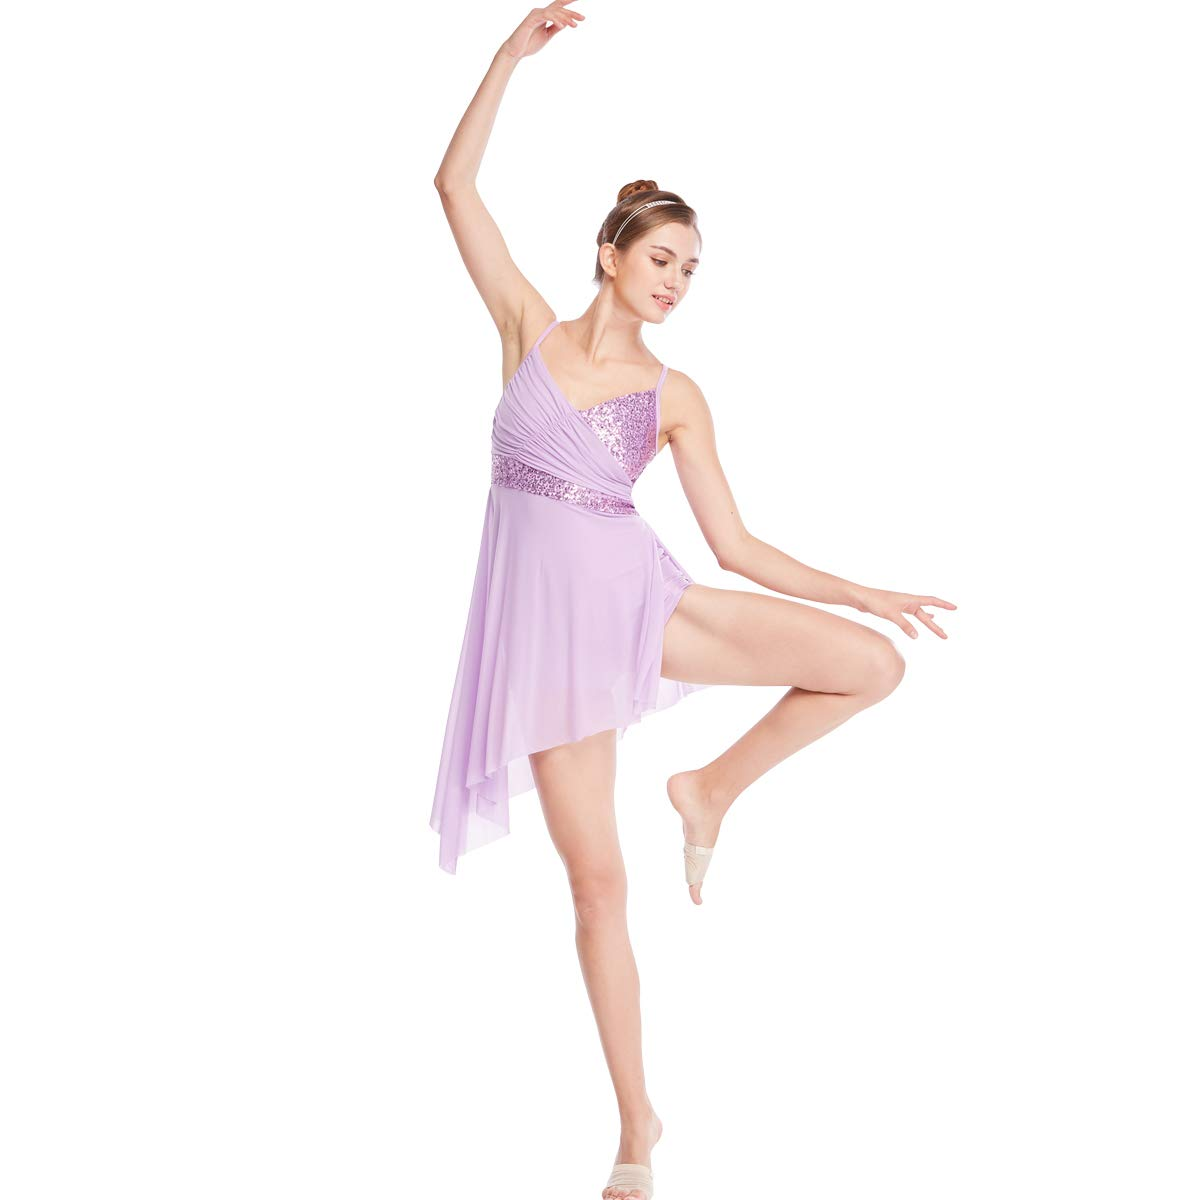 MiDee Latin Dance Costume V-Neck Sequined High-Low Lyrical Dress for Girls